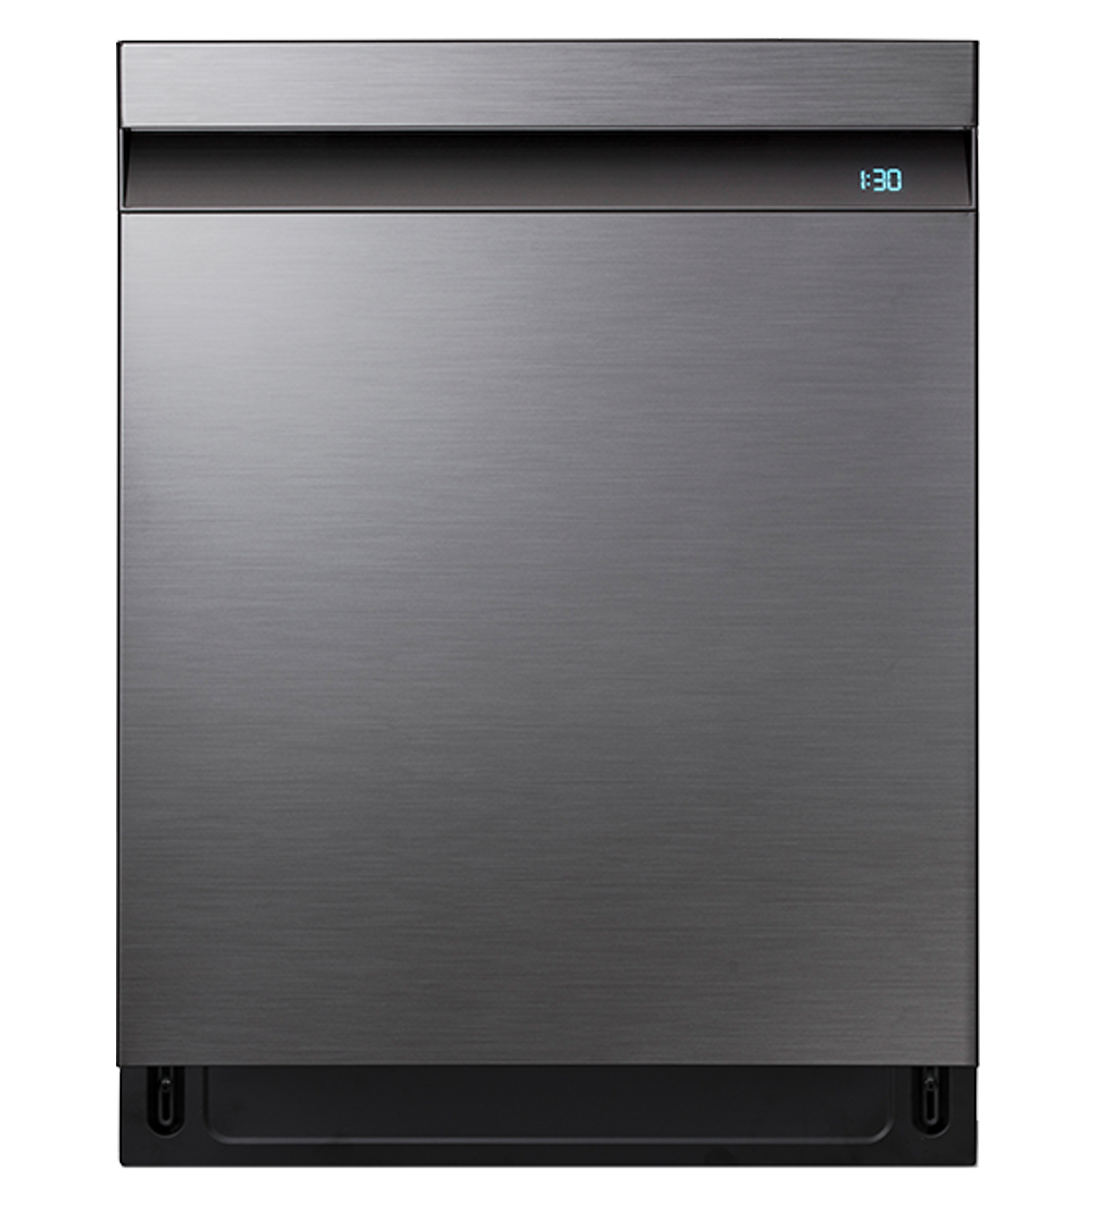 Samsung Dishwasher 24 DW80R9950U